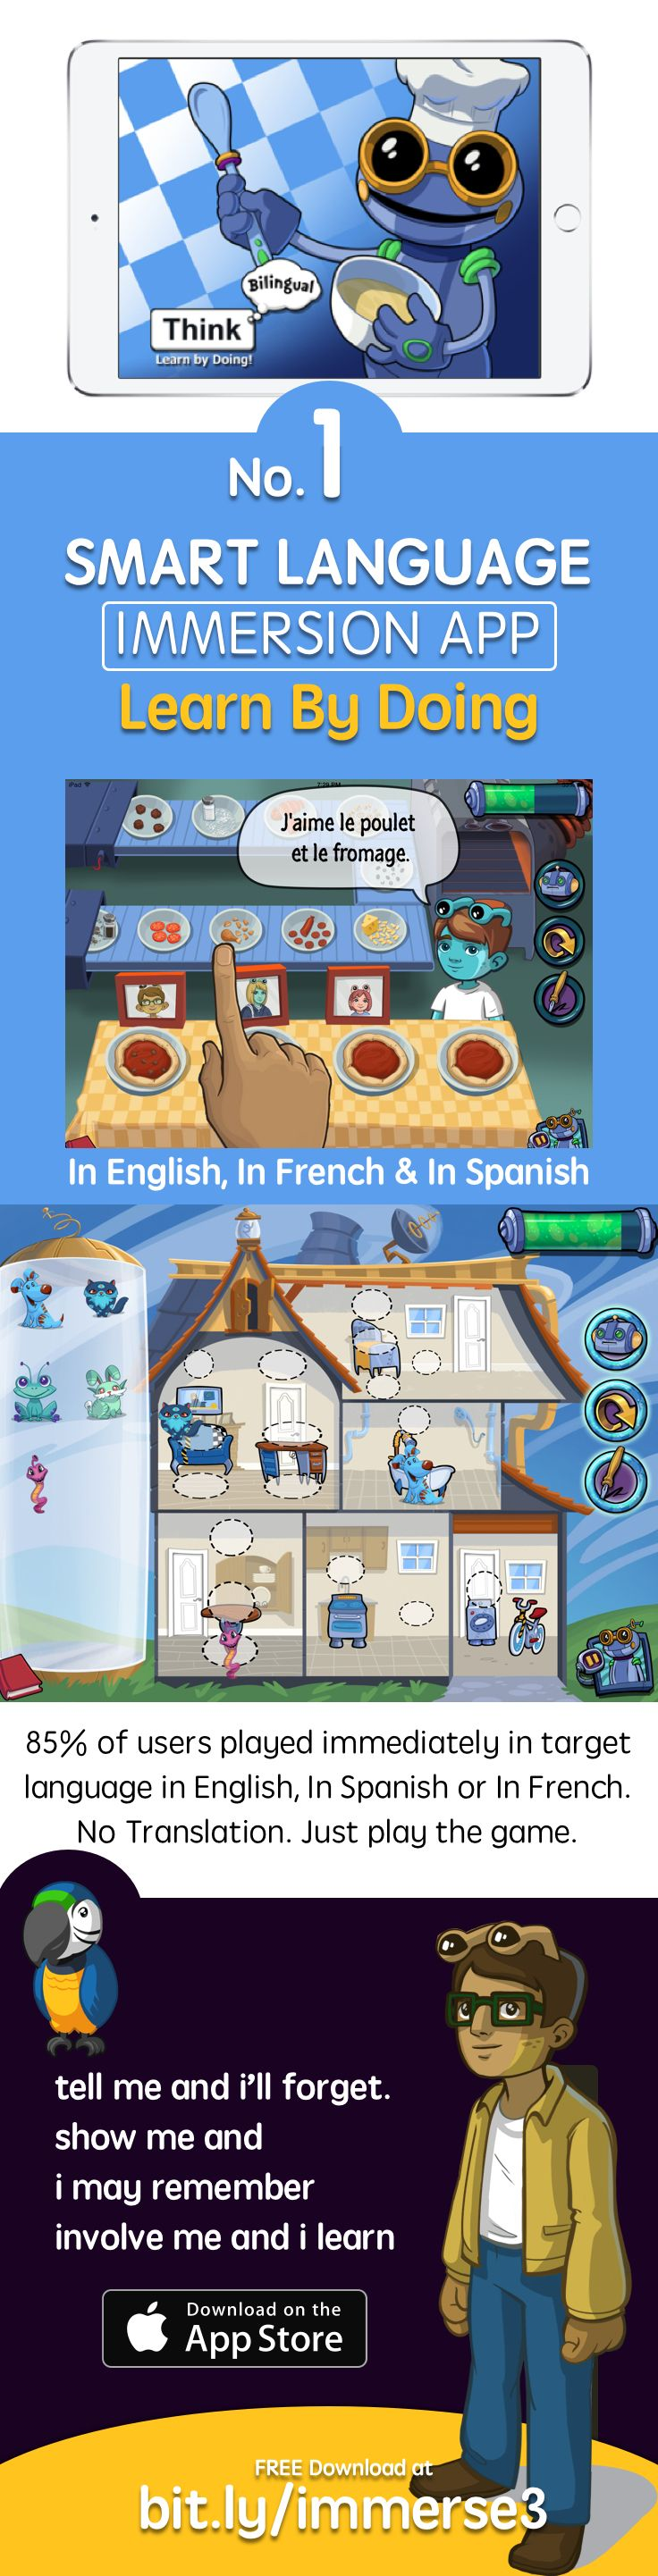 Learn Spanish using the first ever Immersion app https